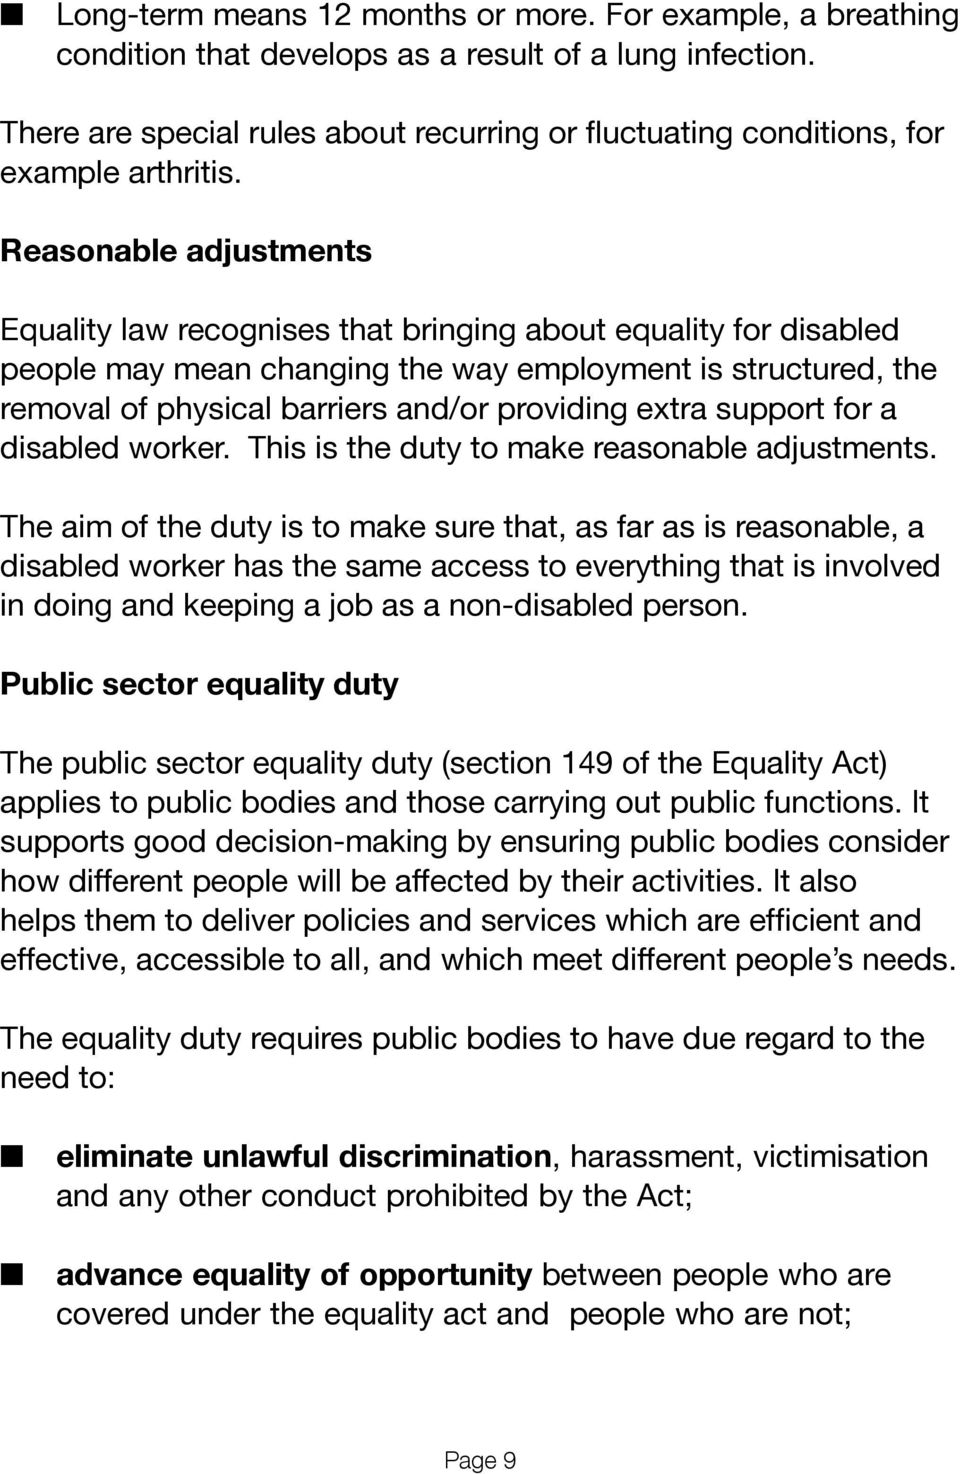 Reasonable adjustments Equality law recognises that bringing about equality for disabled people may mean changing the way employment is structured, the removal of physical barriers and/or providing